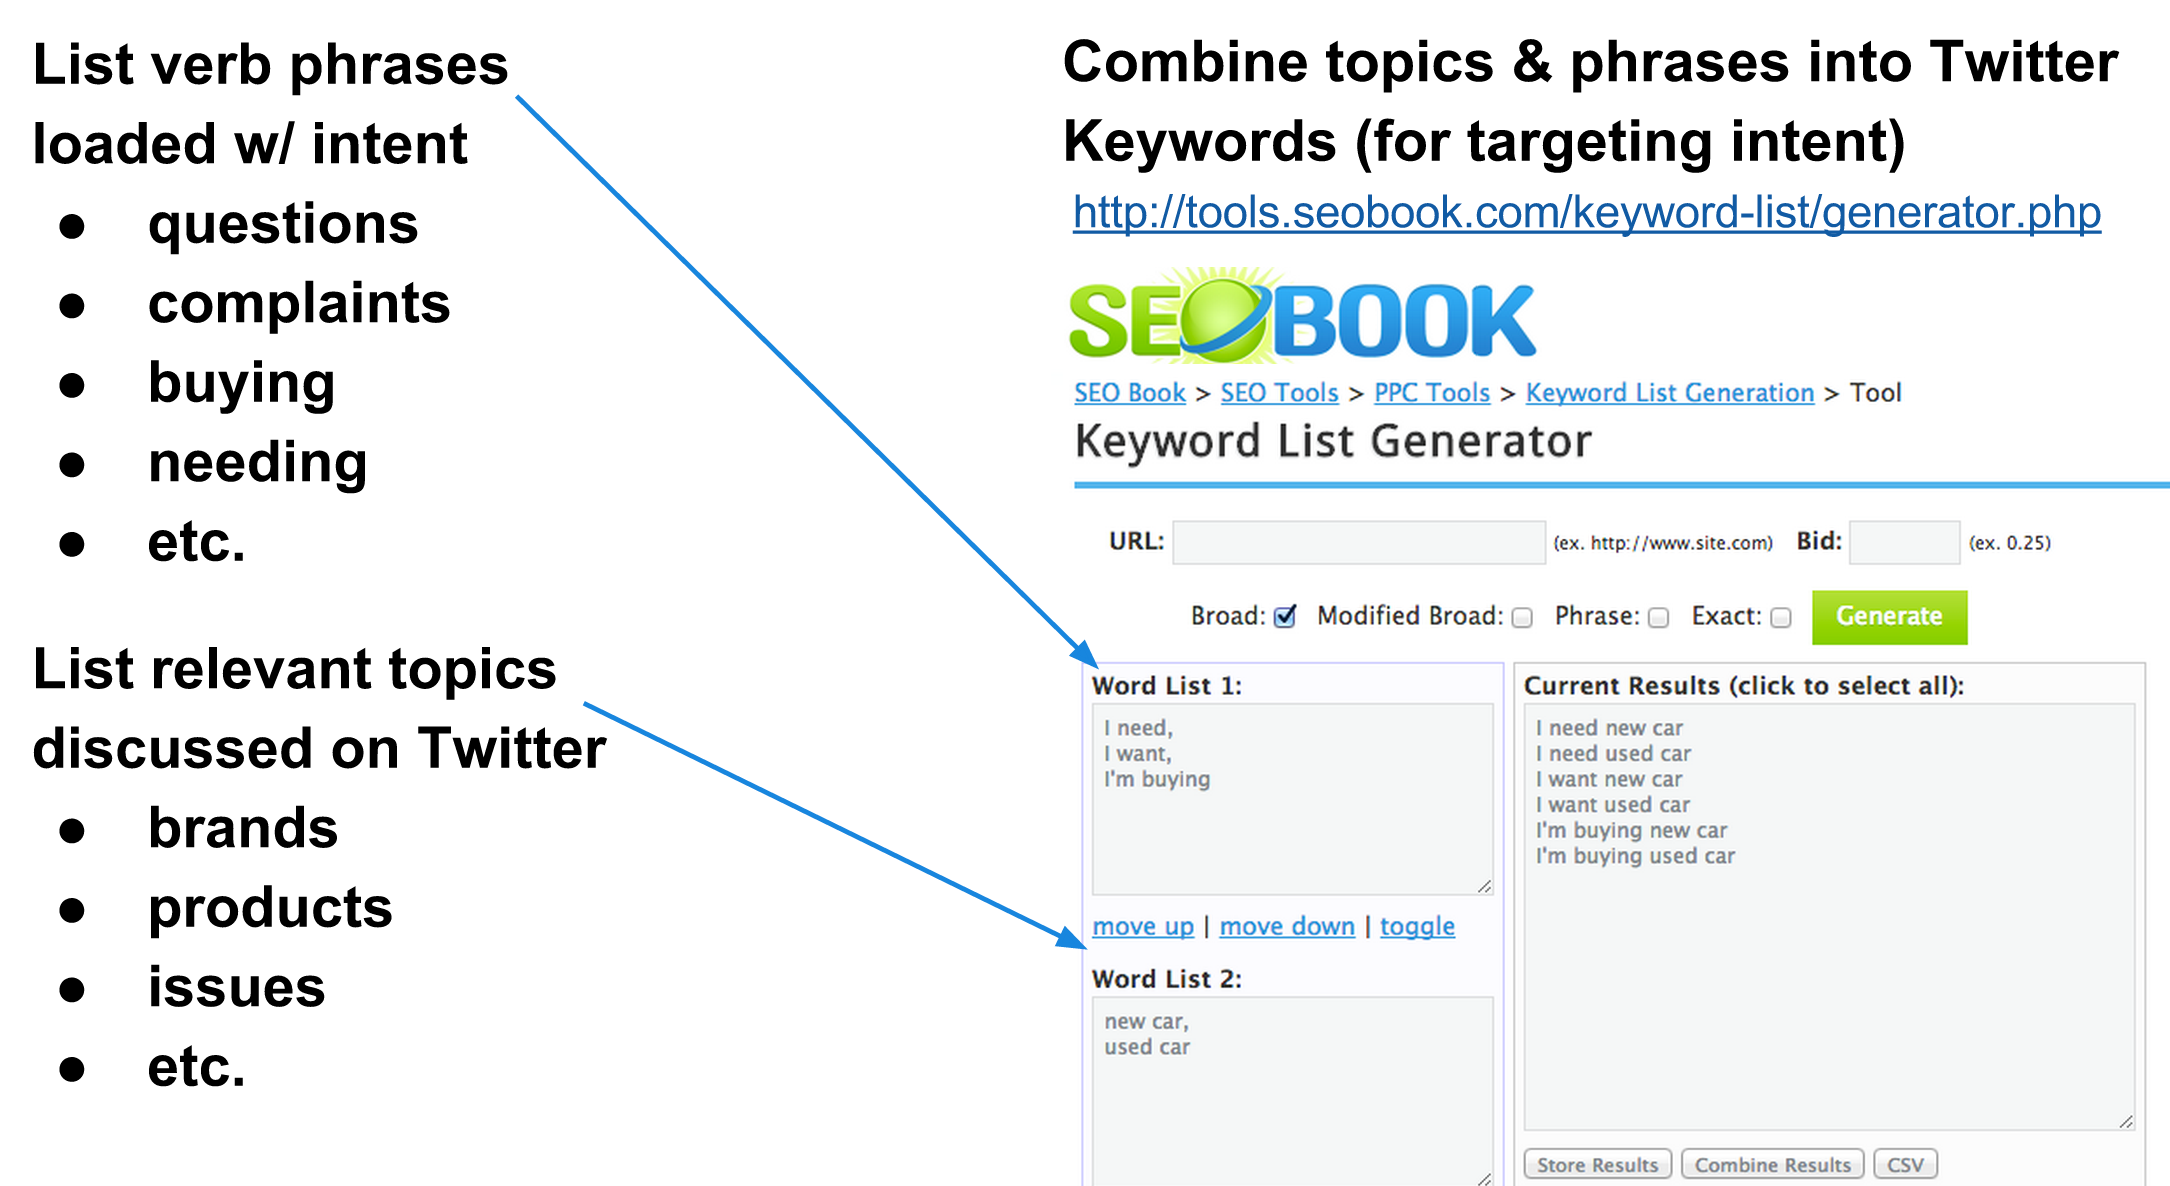 SEO keyword combination tool Snapshot 9:25:13 8:29 AM